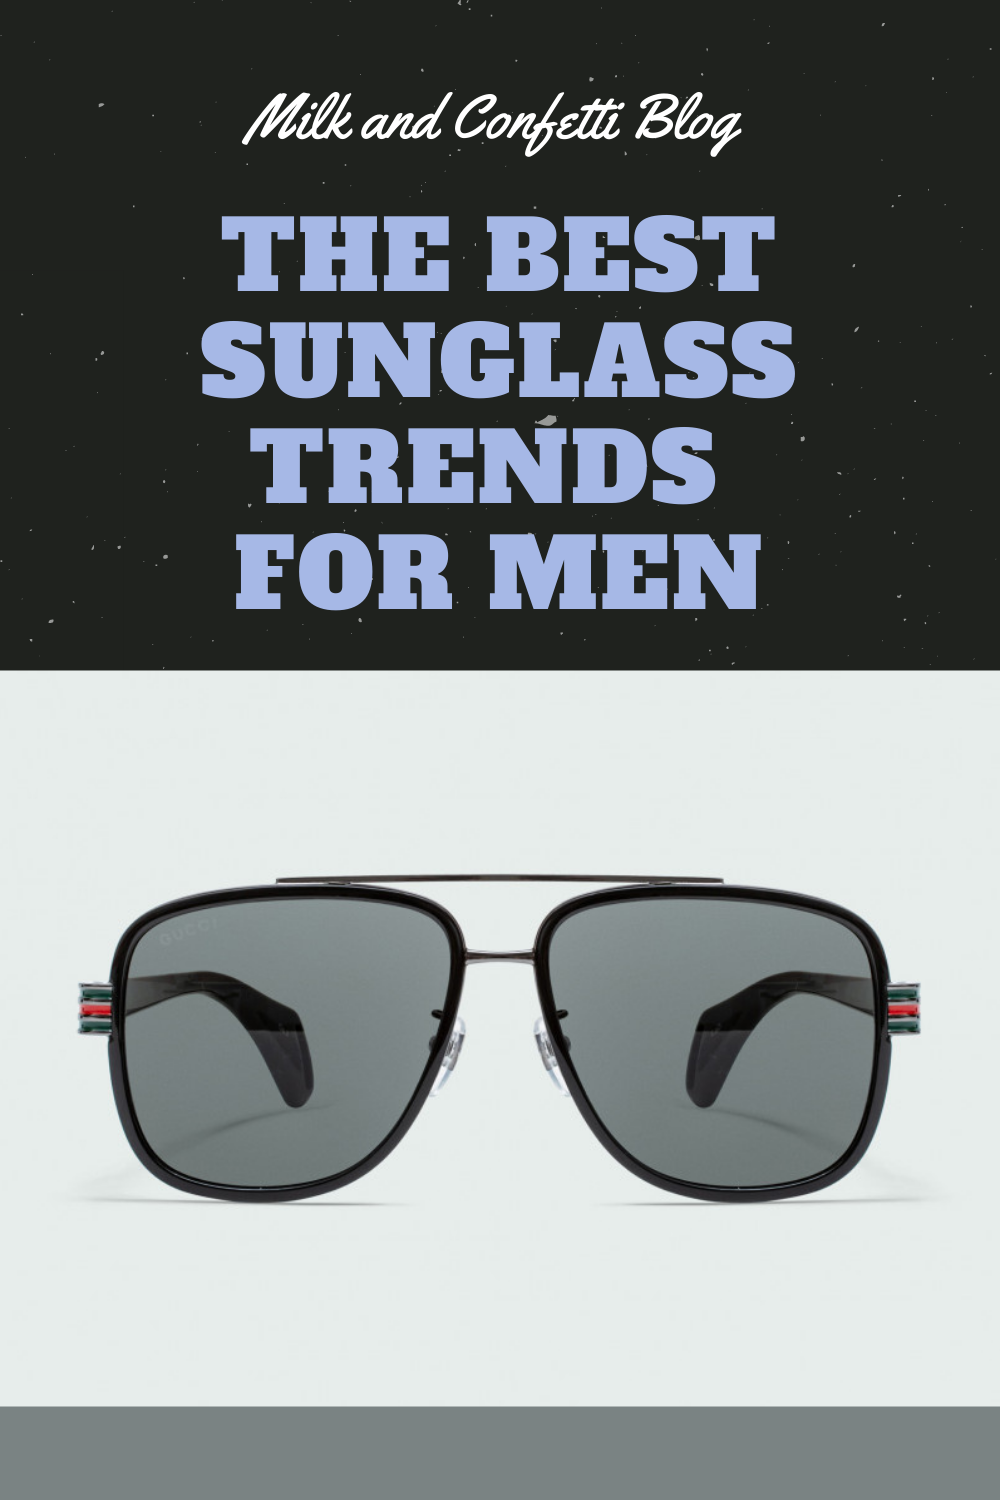 Sunglass trends for men.